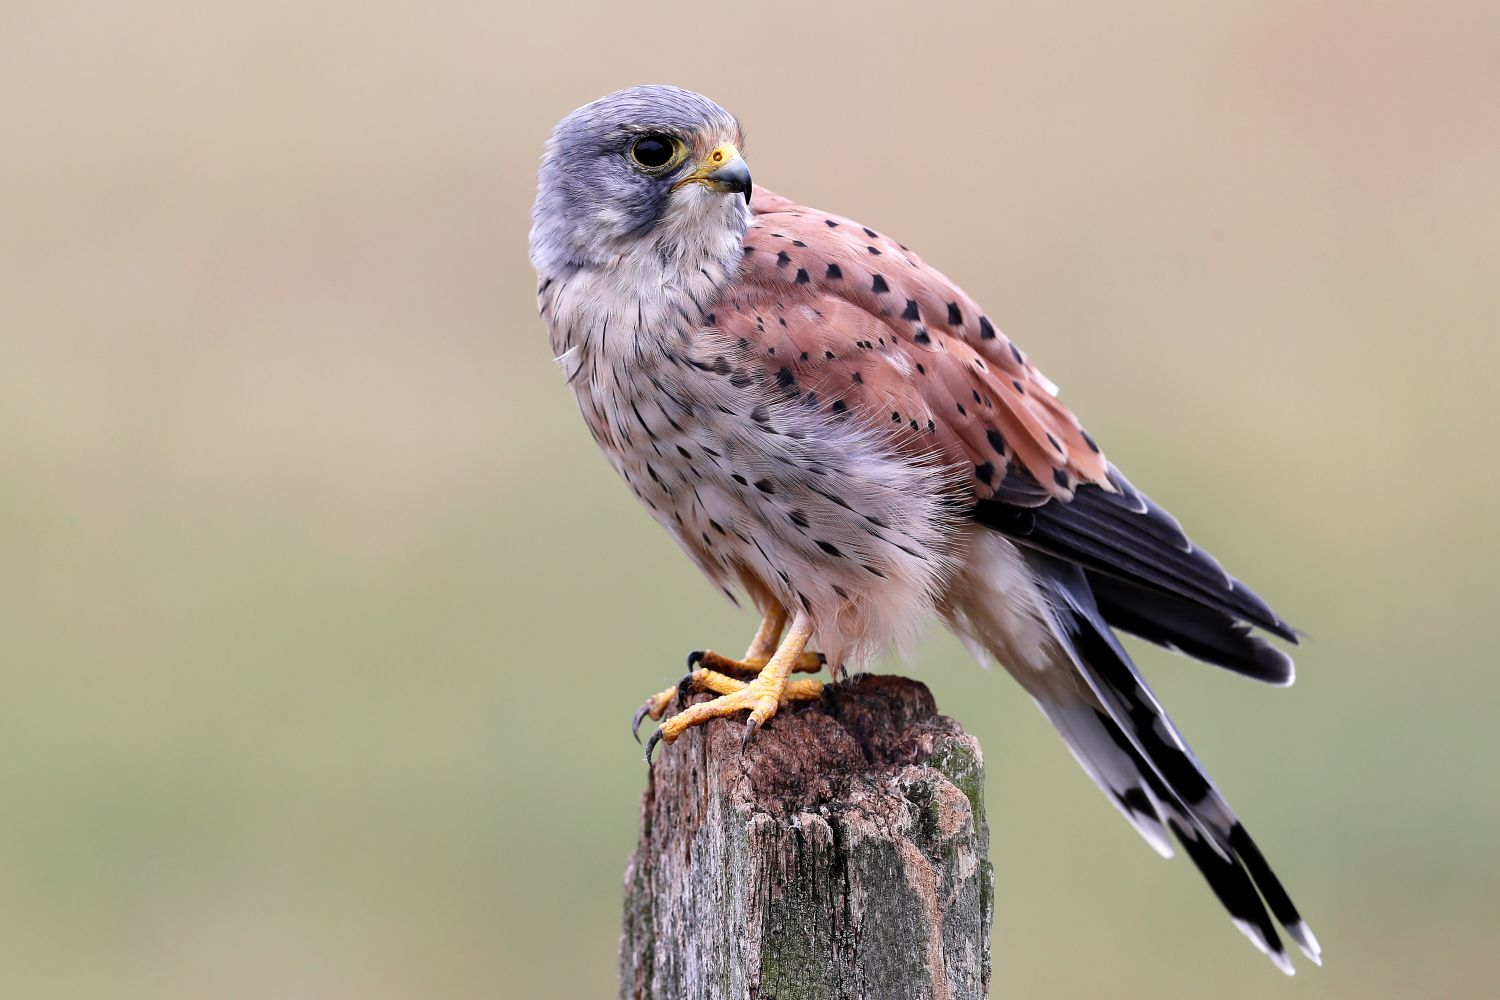 Male kestrel resting on a fence post in the Worcestershire countryside